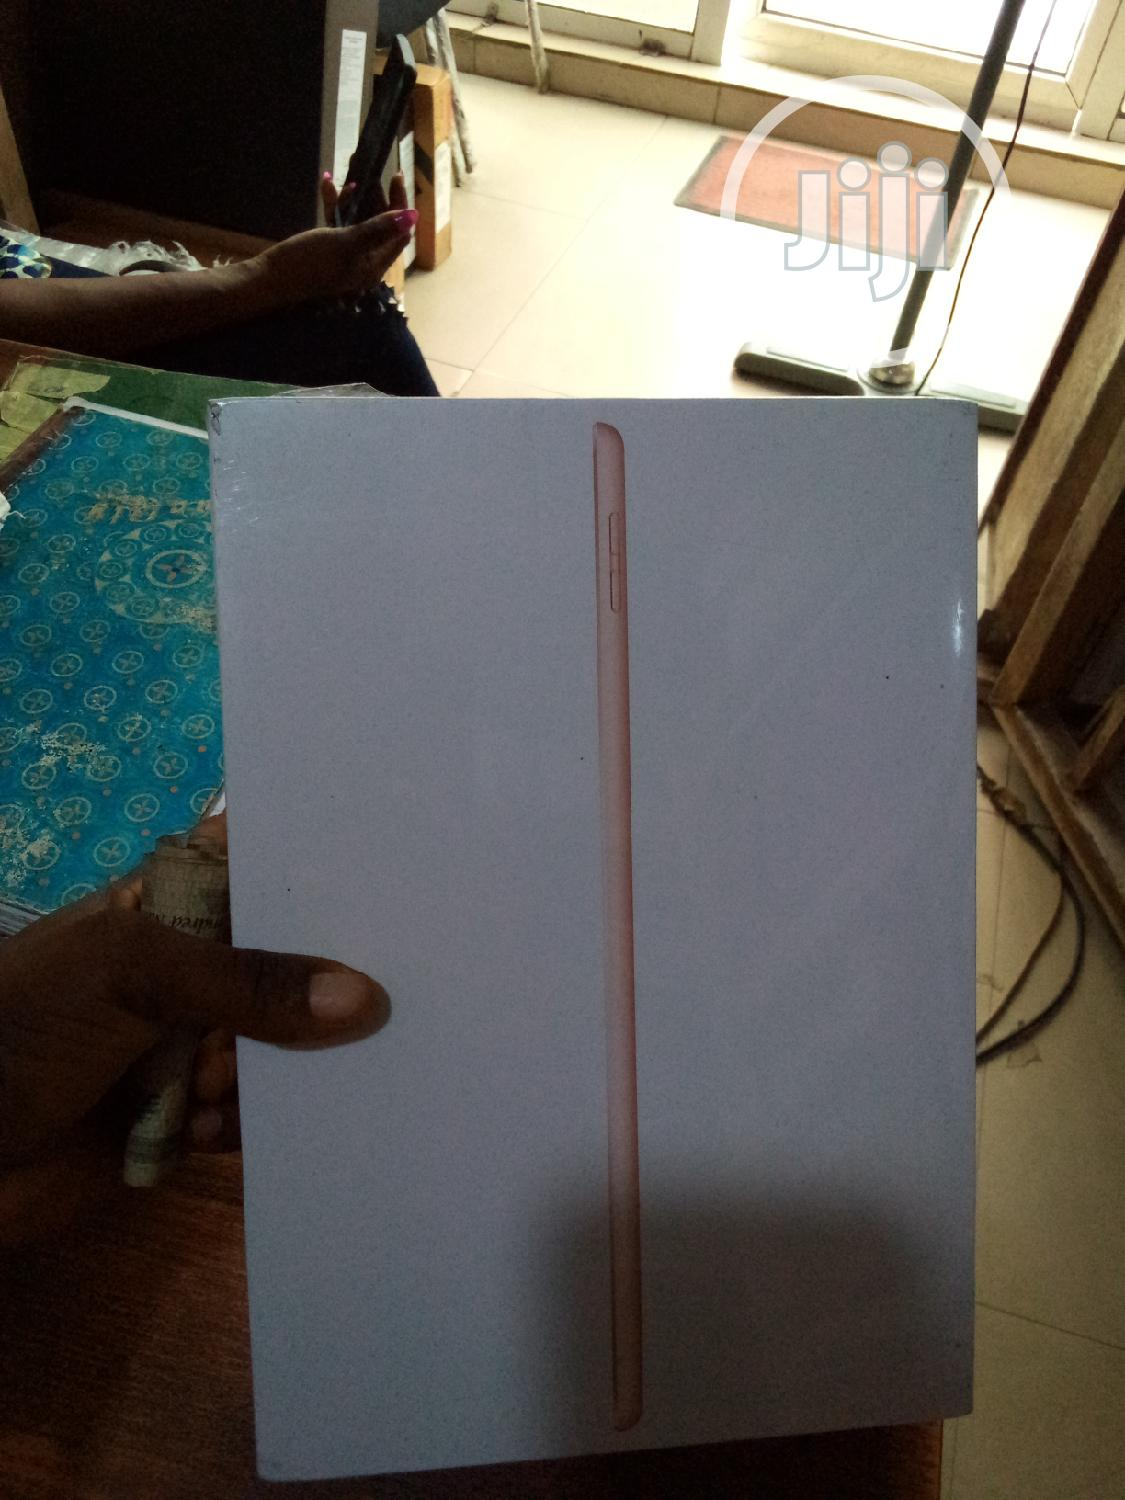 New Apple iPad 10.2 (2019) 32 GB